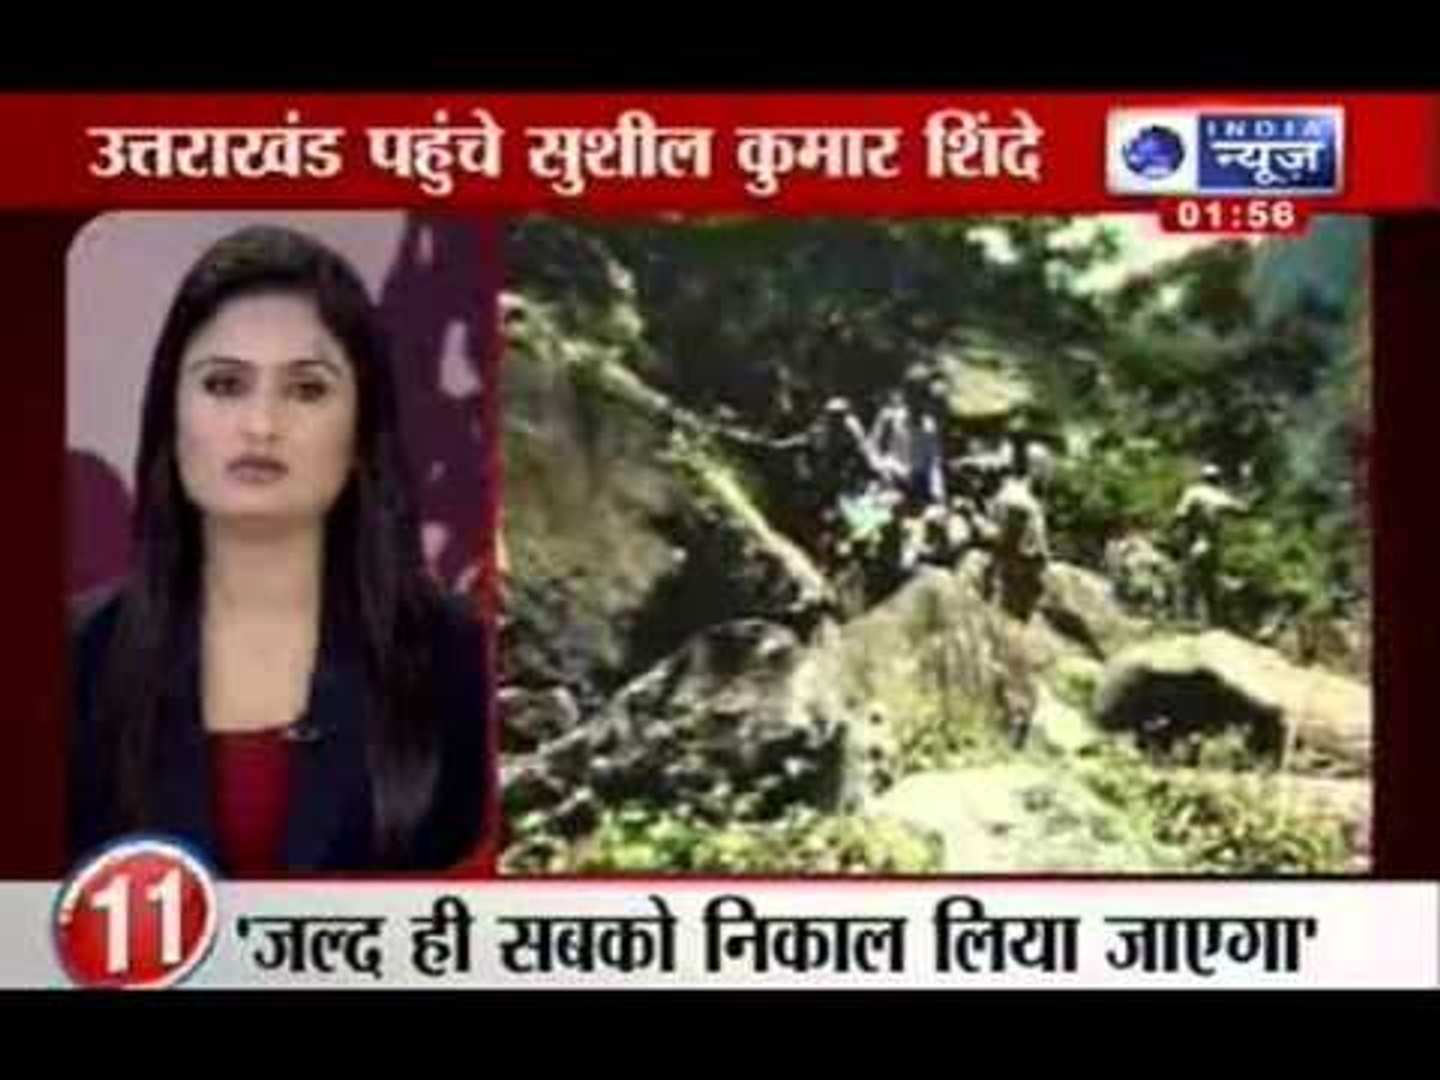 India News: Top 25 News at this hour